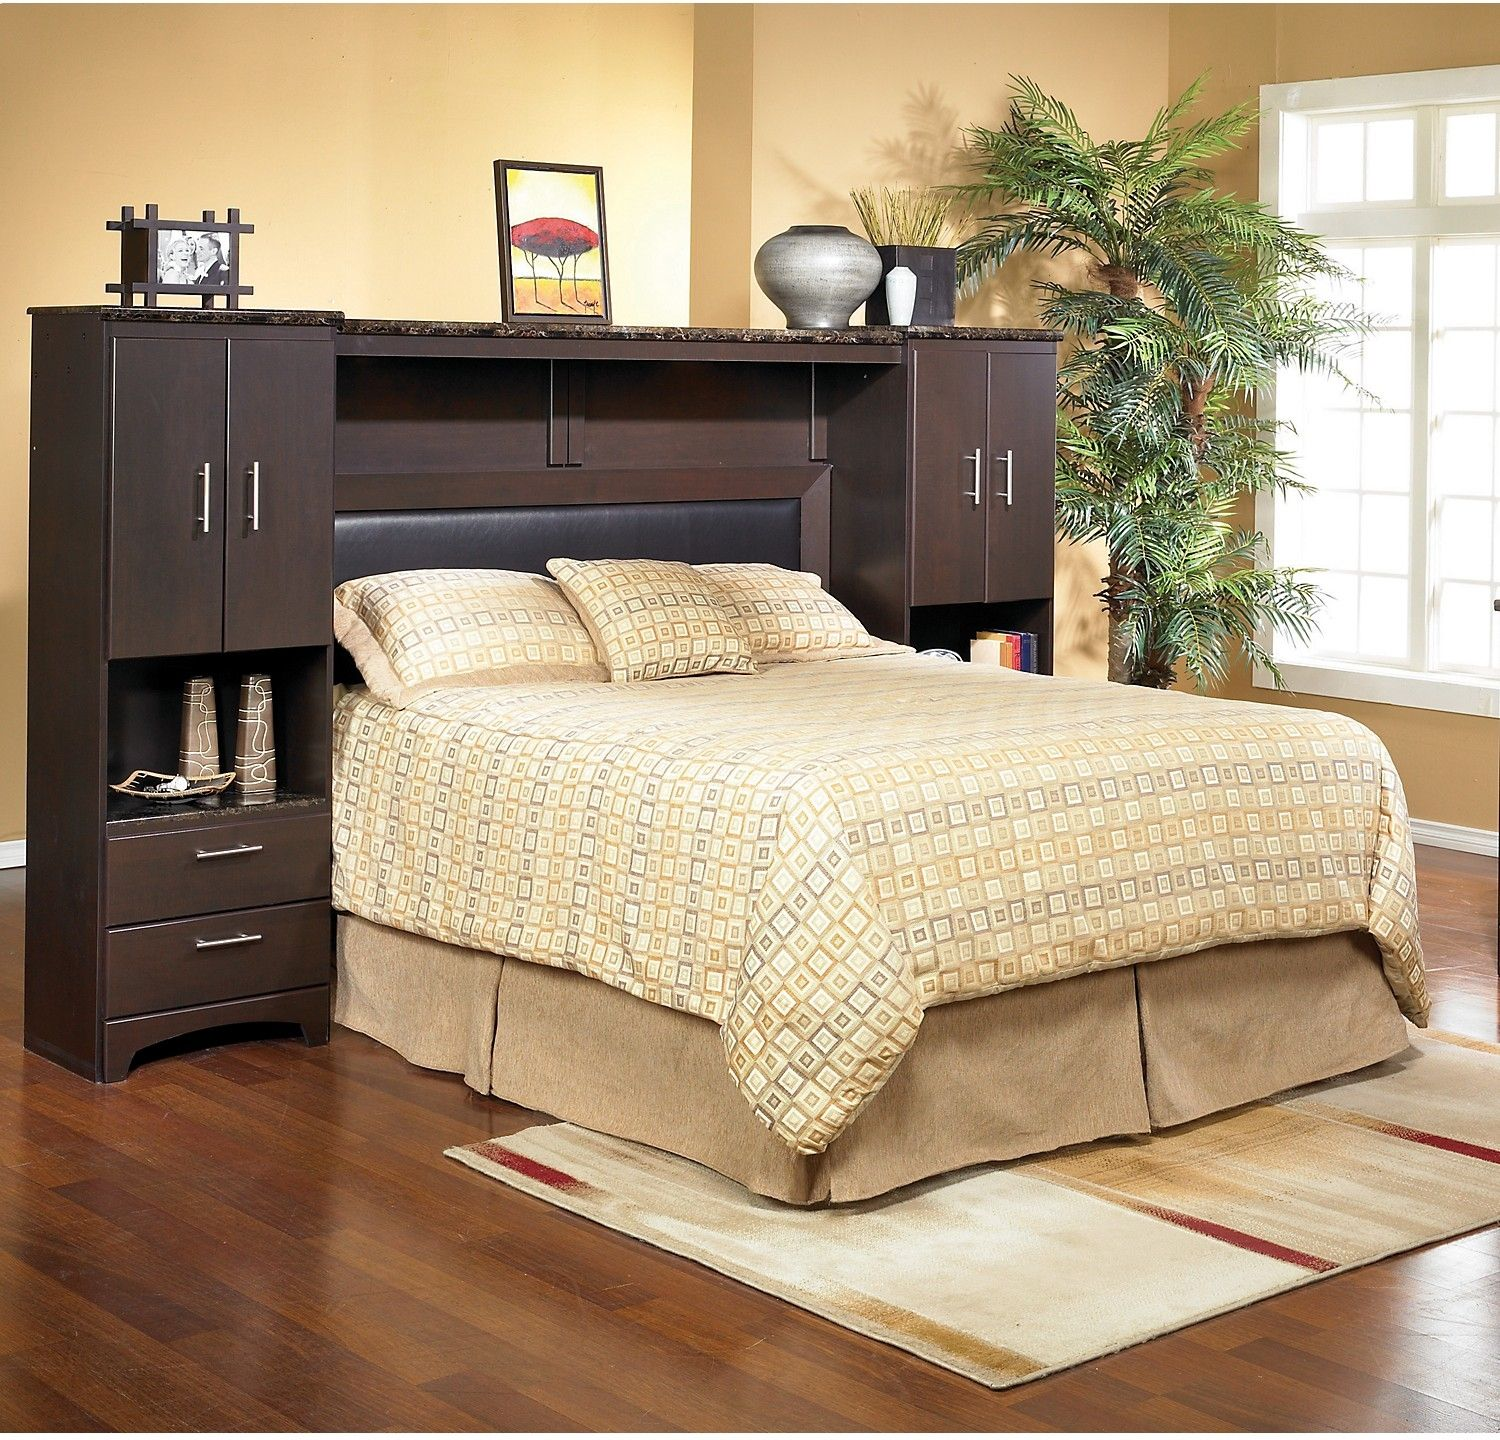 bedroom furniture oxford queen wall bed with piers - Pier Wall Bedroom Furniture